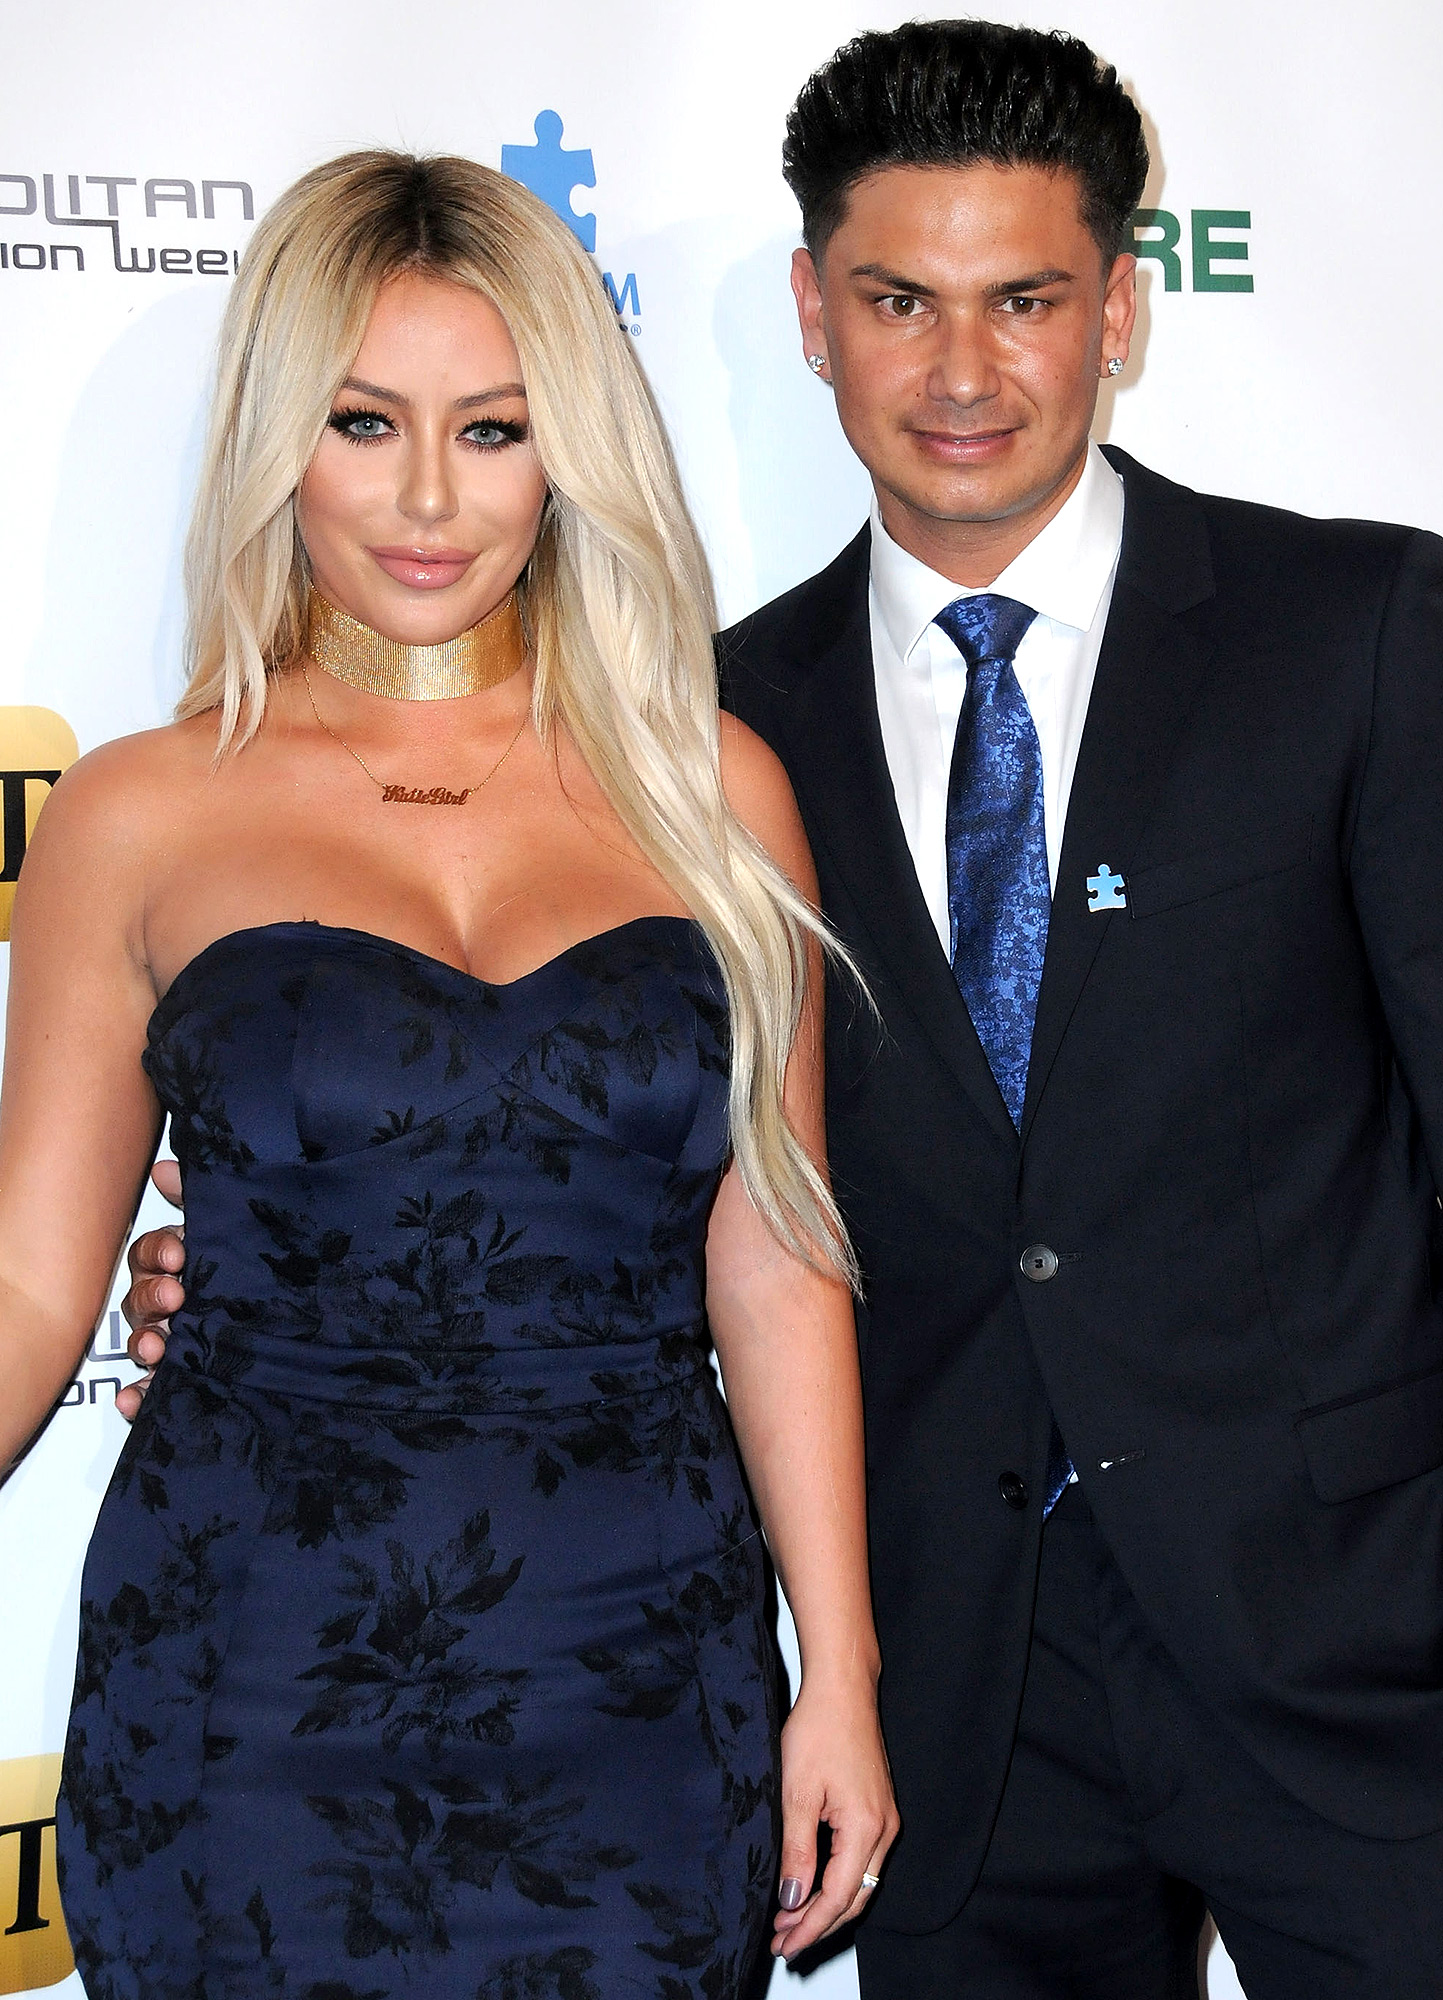 Married pauly d Pauly D